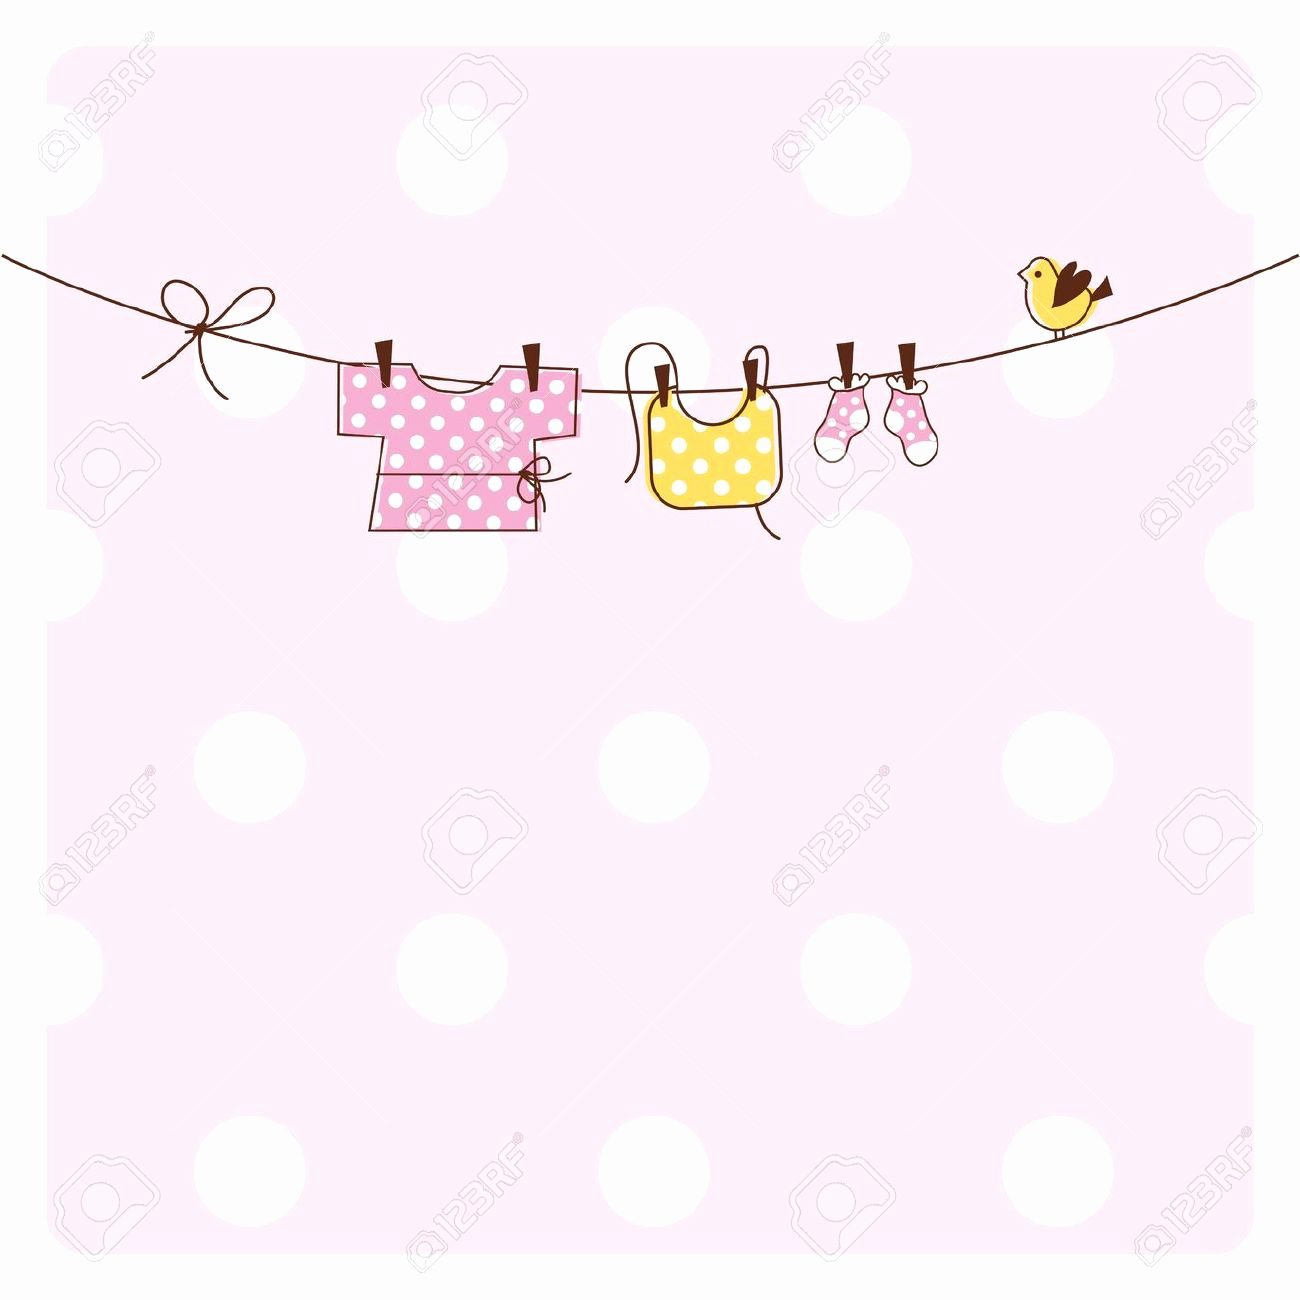 Baby Shower Invitation Clip Art New Clipart Baby Shower Invitations Png and Cliparts for Free